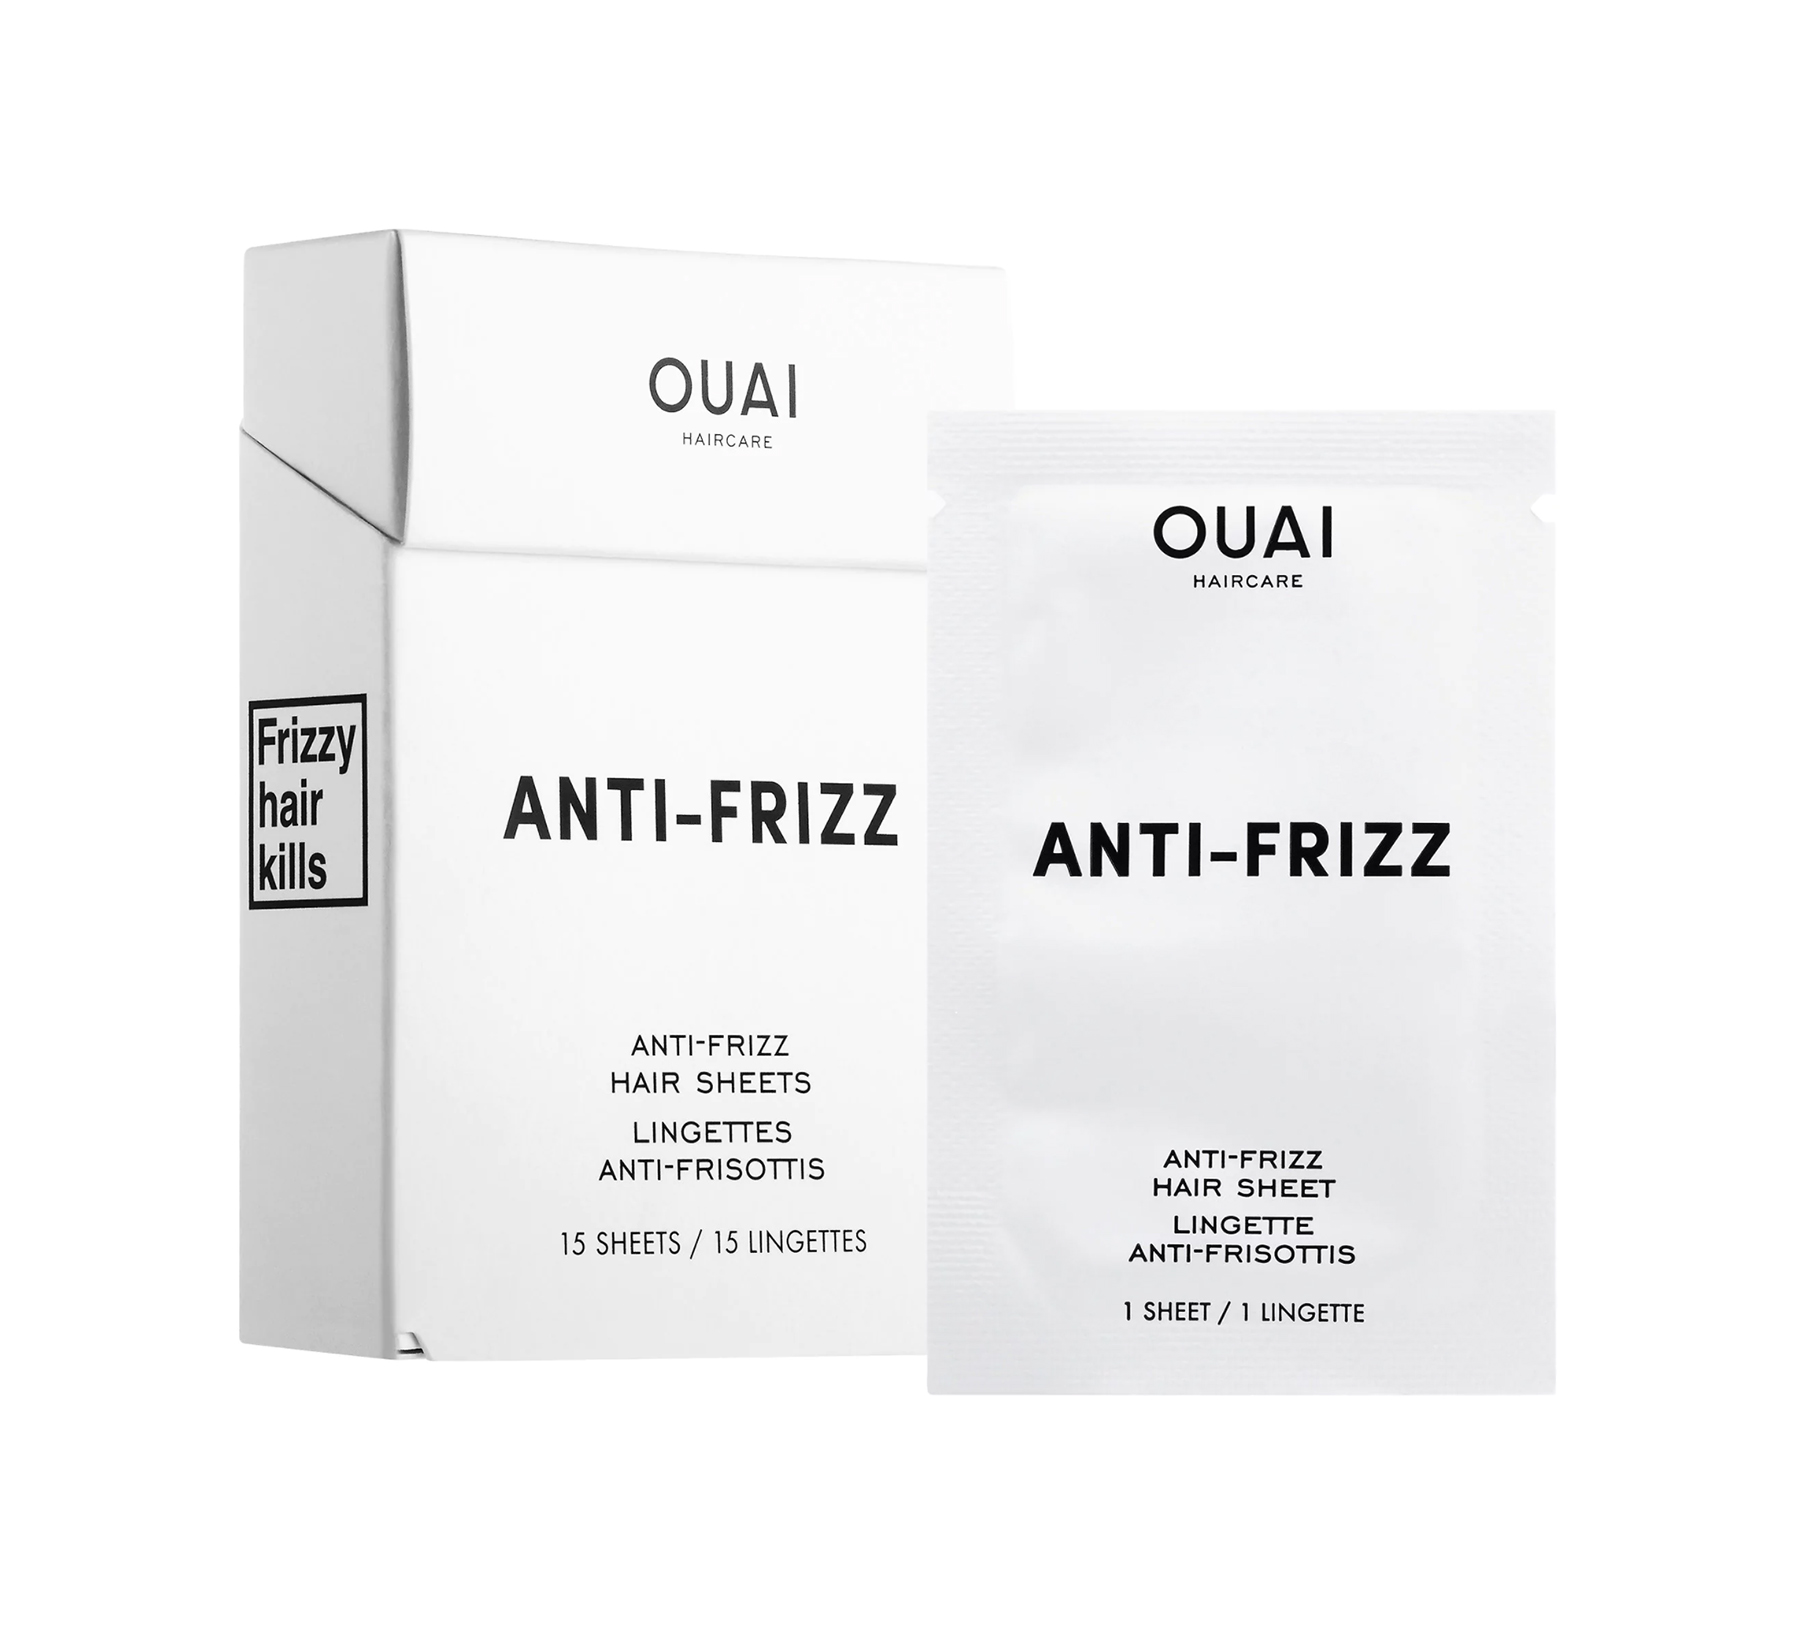 Ouai Hair Sheets